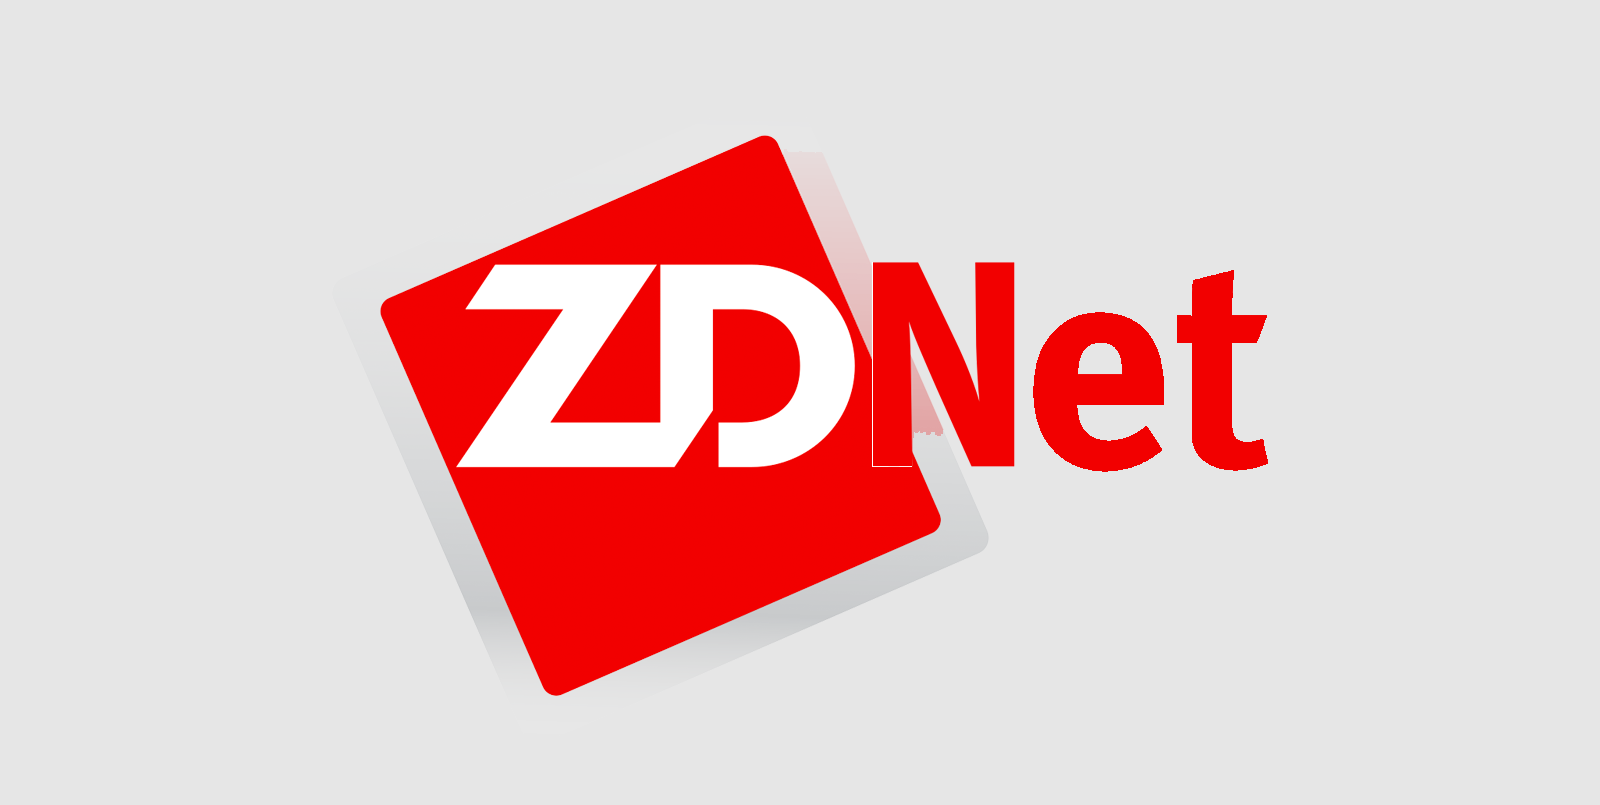 Cloudify CEO on ZDNET